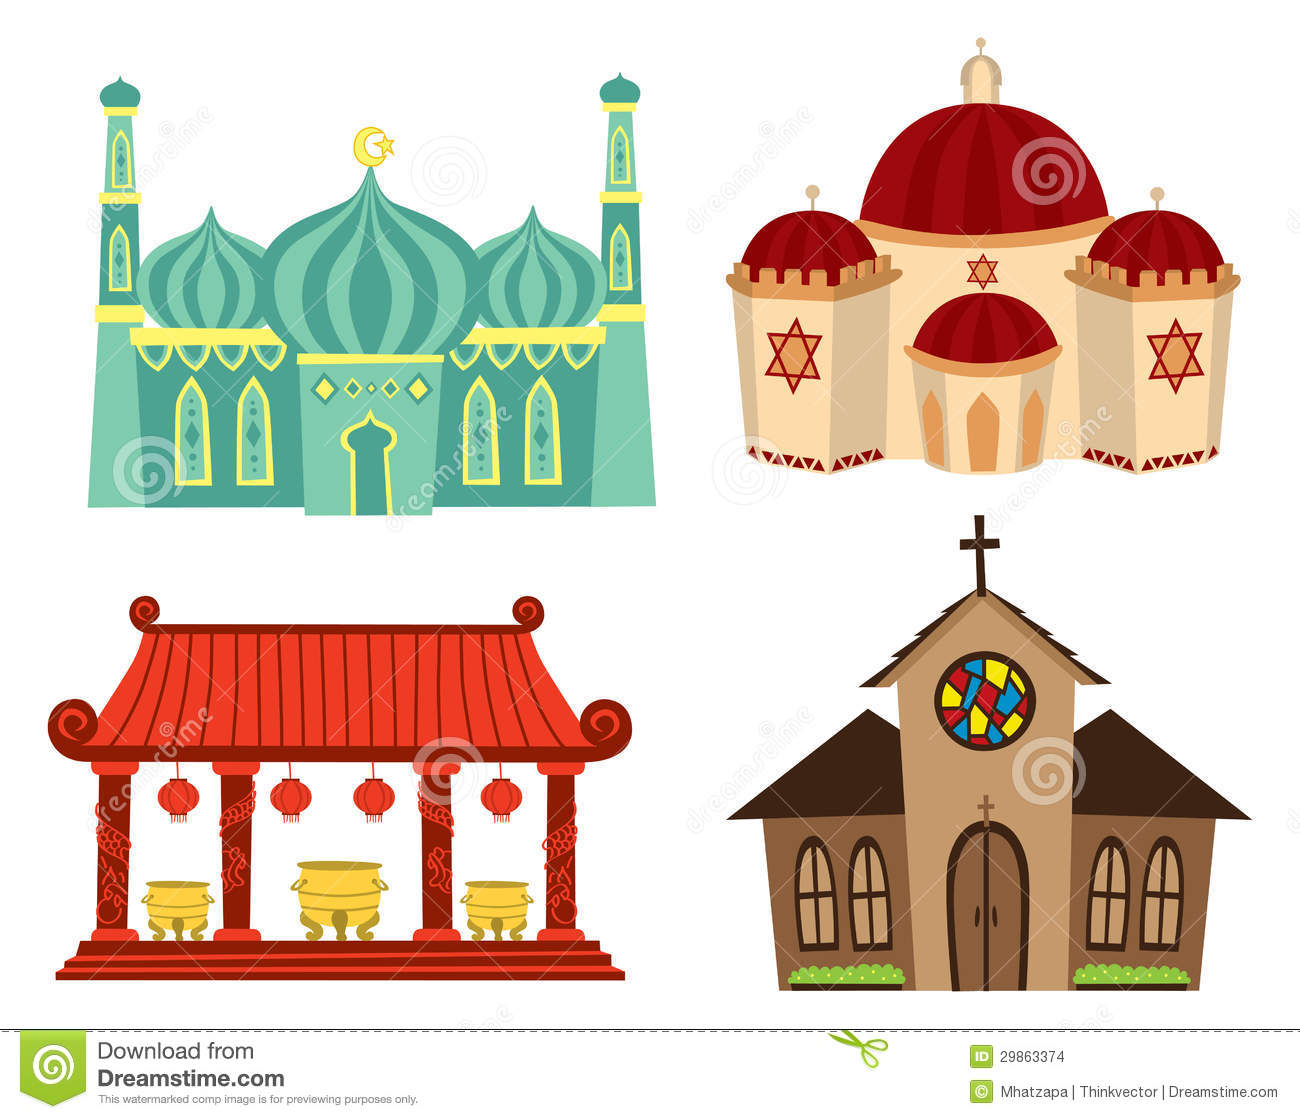 worship places clipart place background community vector illustration cliparts synagogue clipground illustrations colored related site